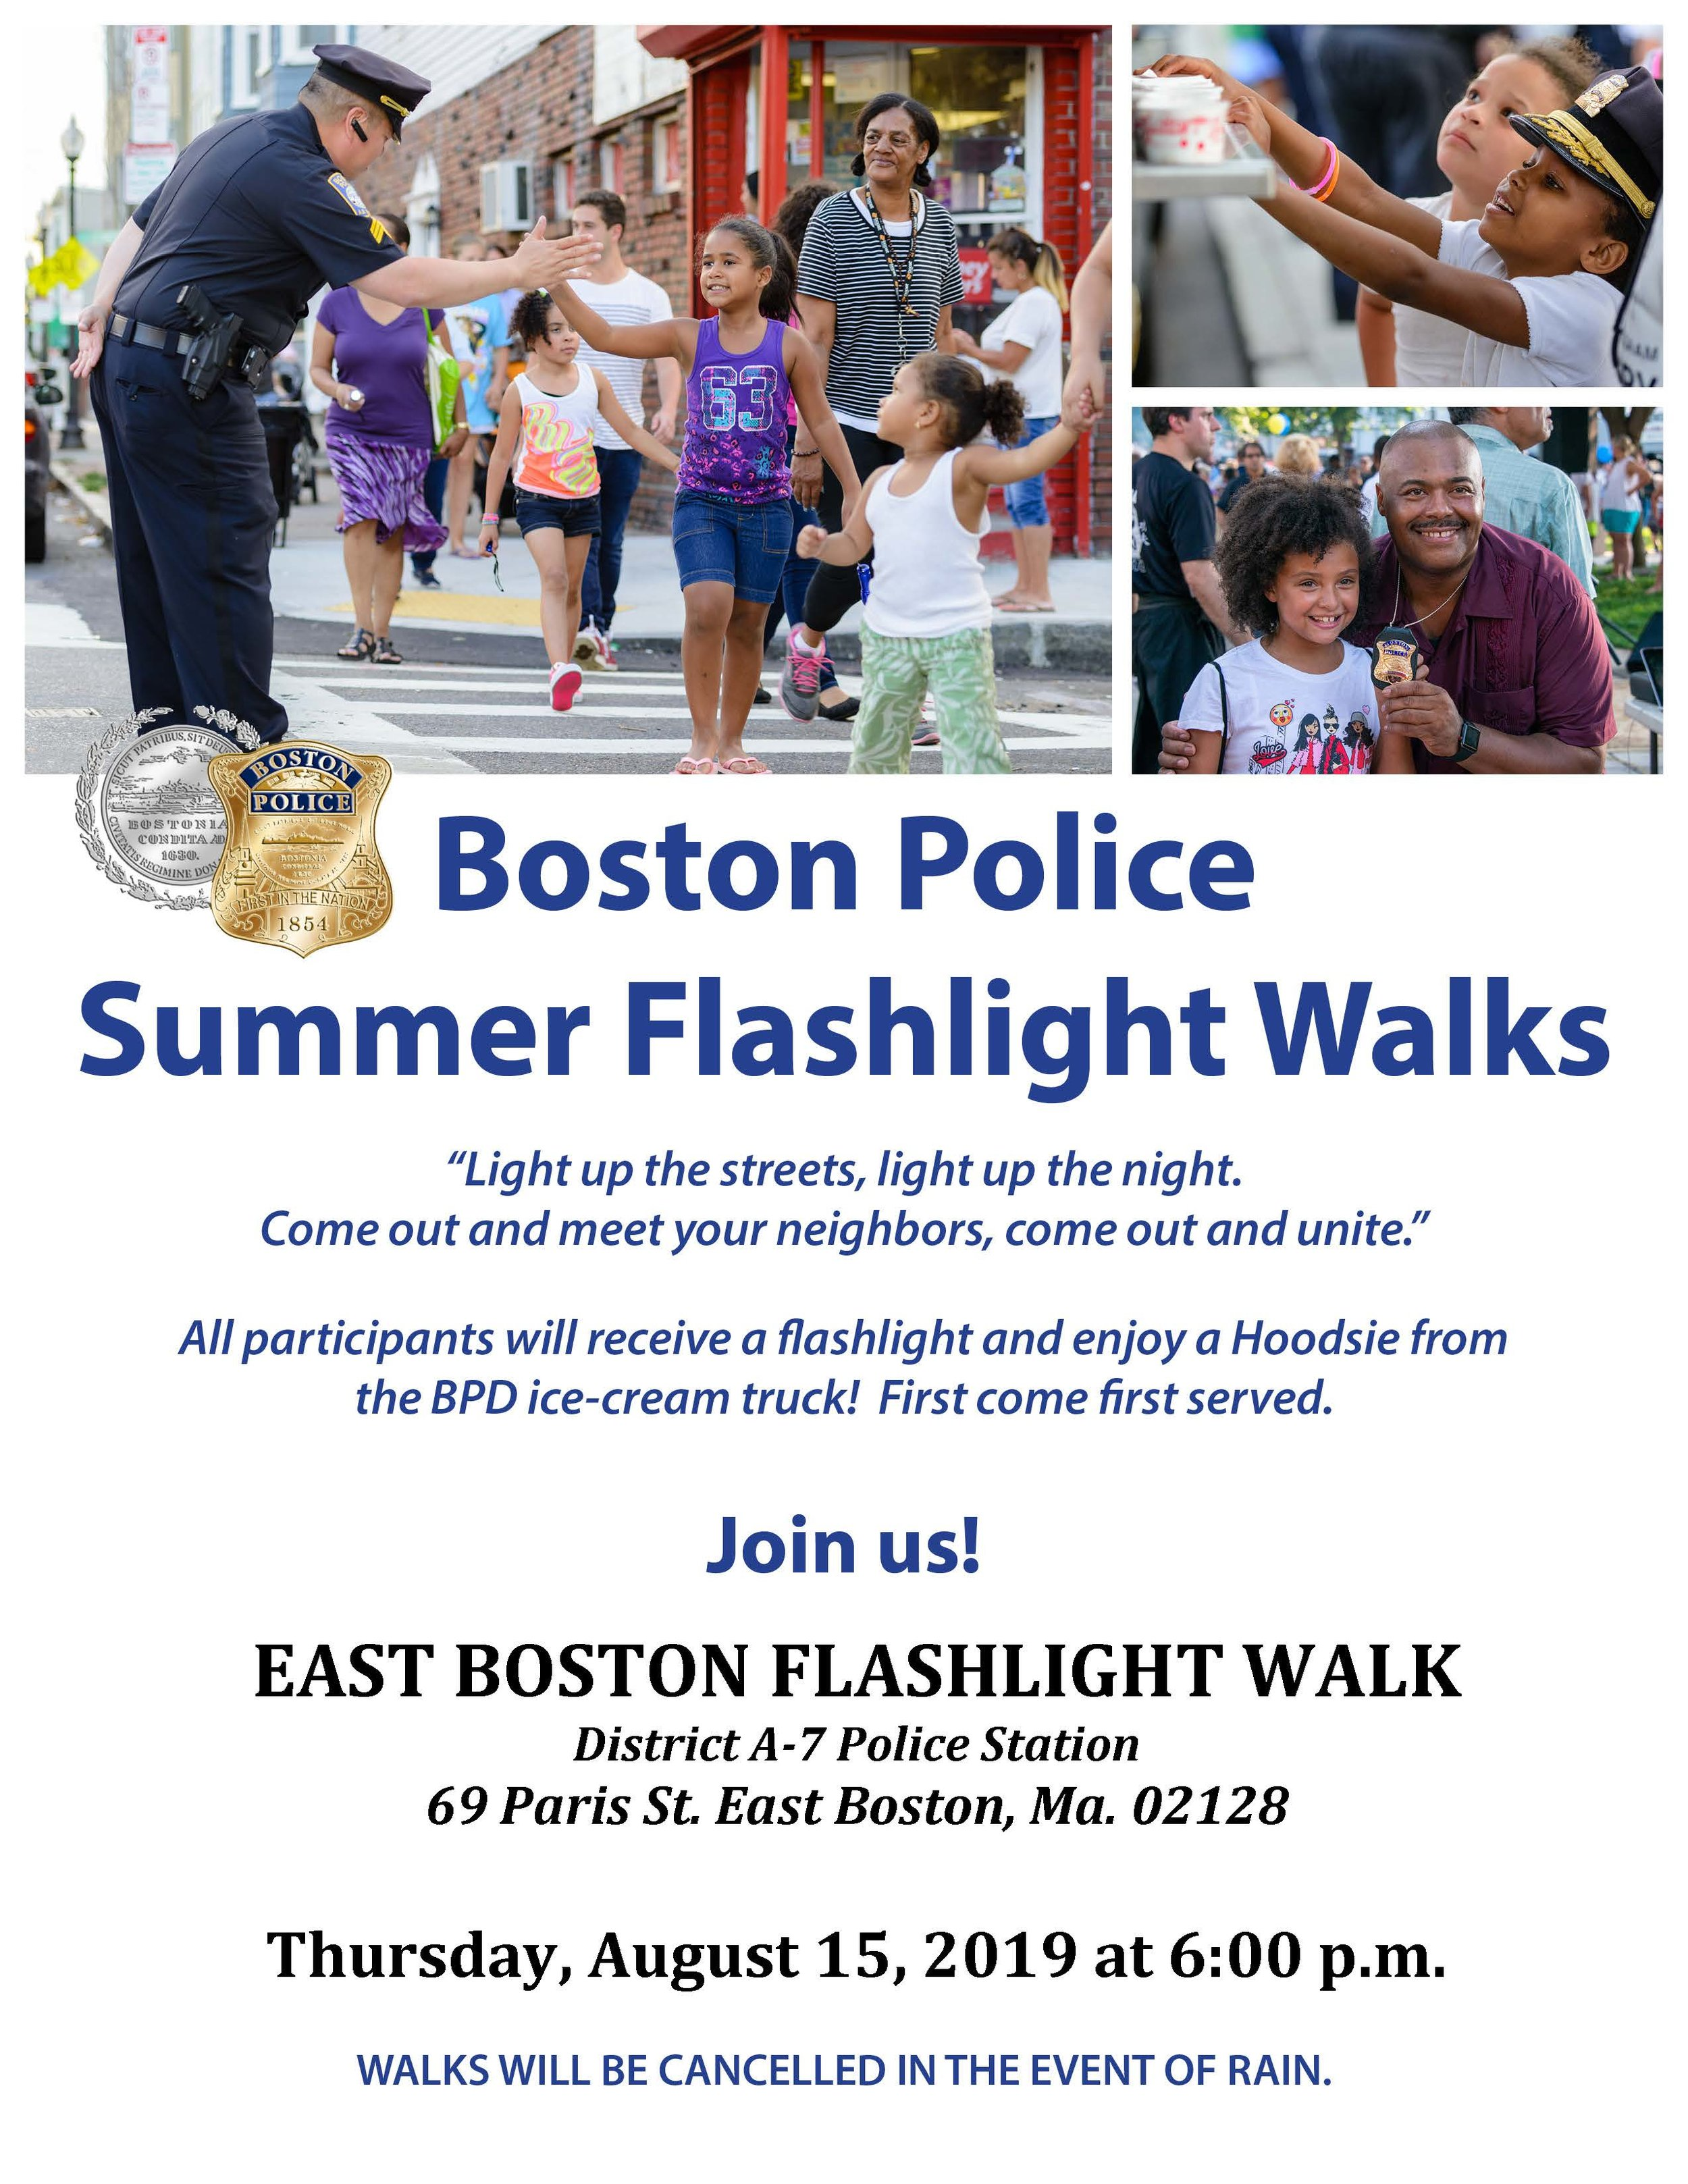 East Boston Flashlight Walk.jpg